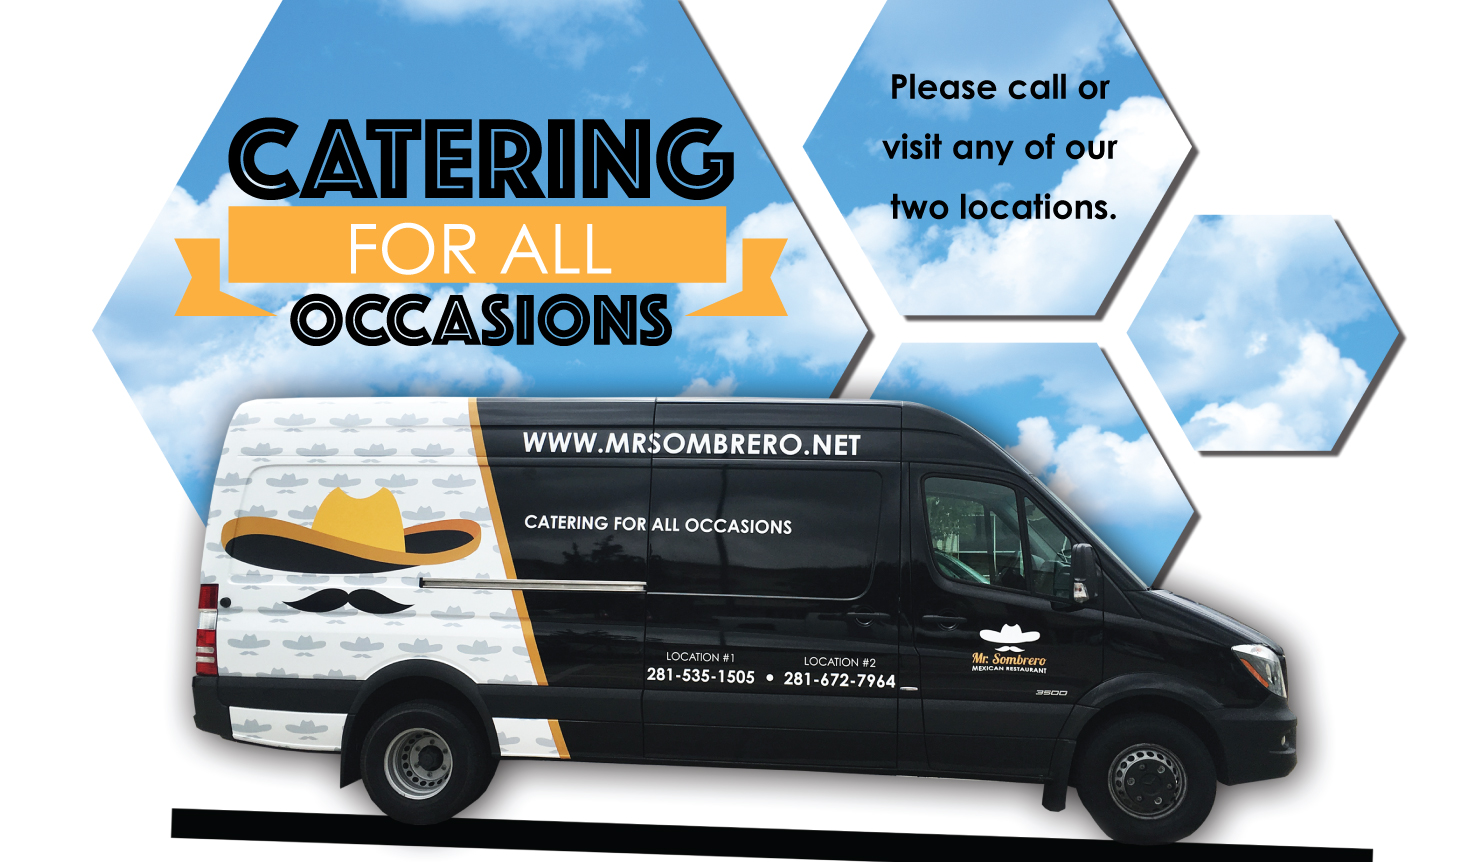 301-0610-cateringvan-website.jpg